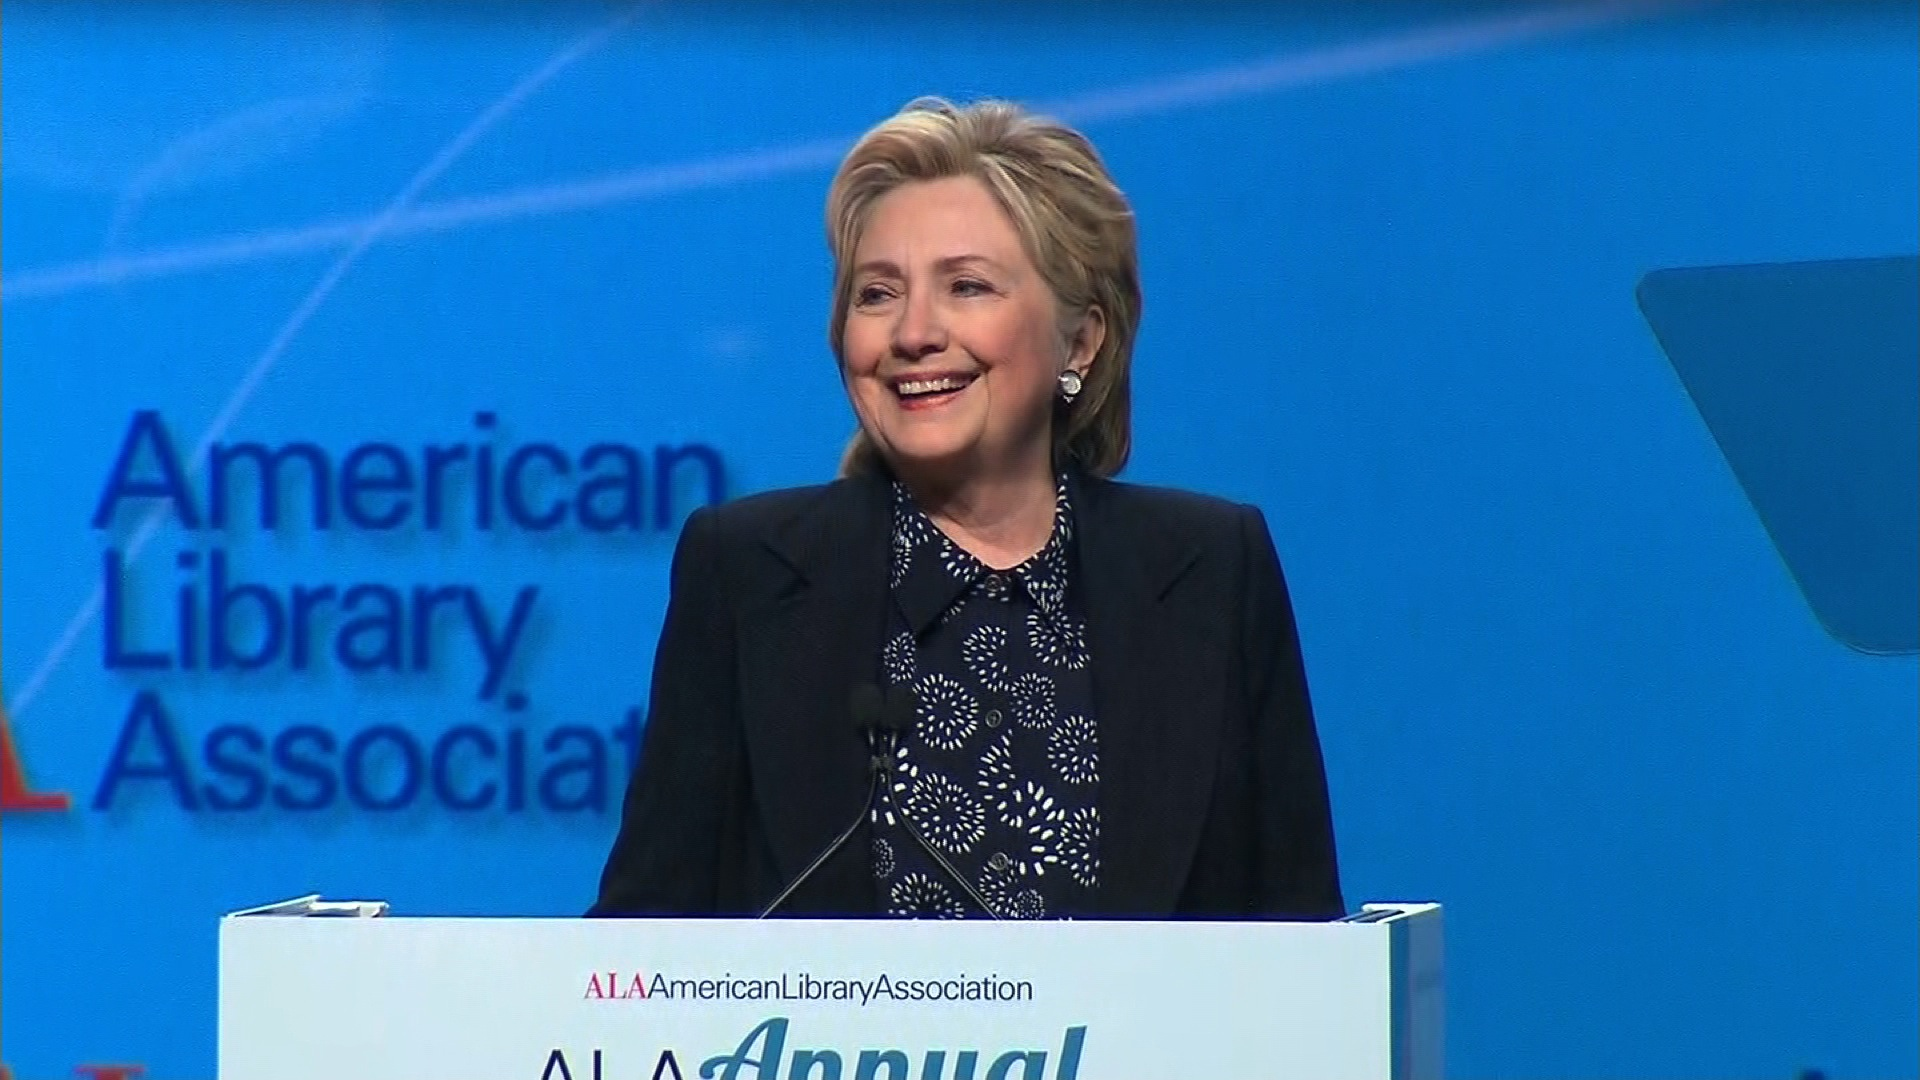 American Library Association Hillary Clinton Full Ala Conference Speech